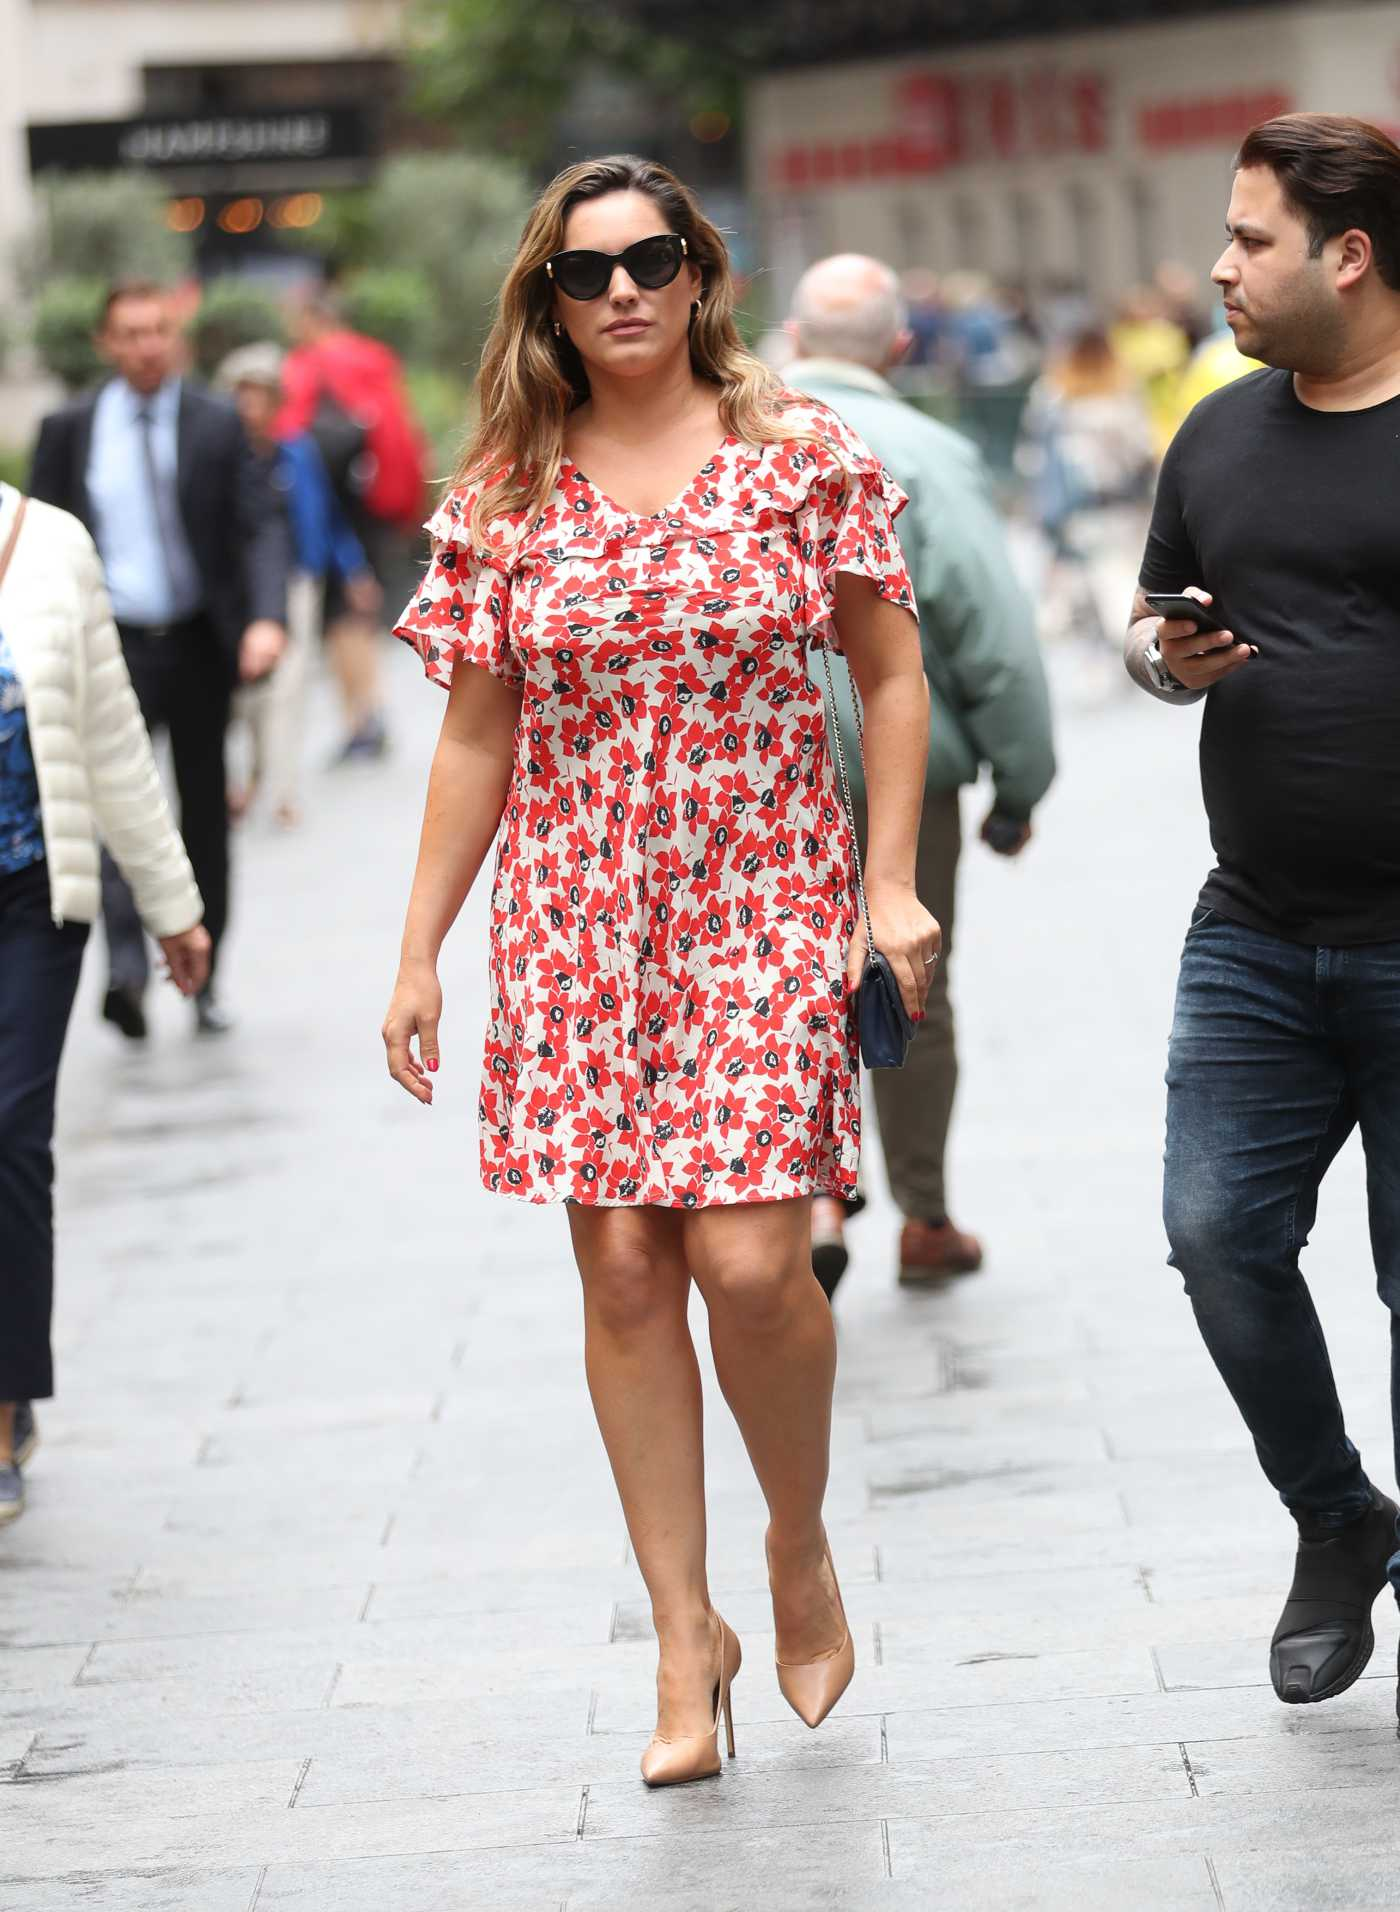 Kelly Brook in a Red Floral Dress Arrives at Global Radio Studios in London 07/18/2019